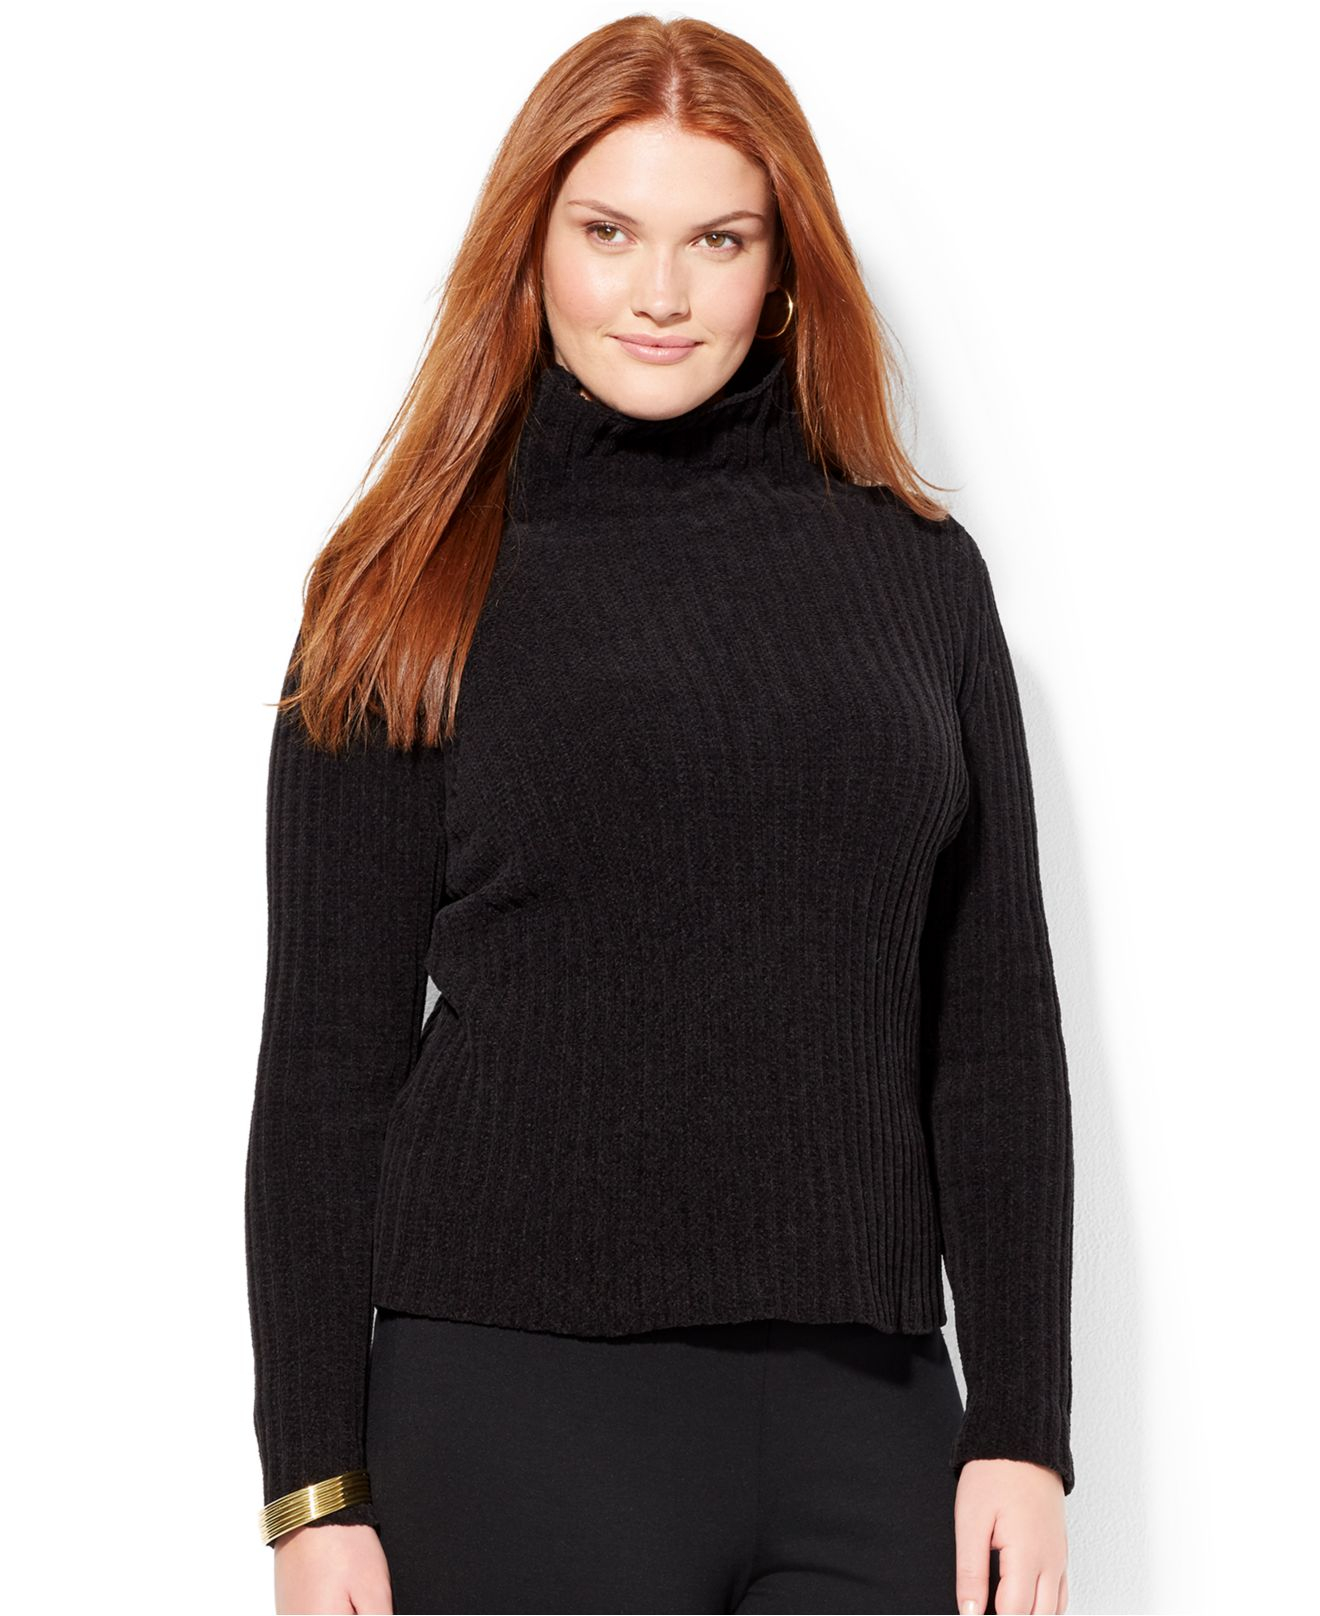 Find cute warm sweater dresses for winter online, buy sexy winter sweater dresses for women from jomp16.tk and get free shipping. Warm nightclub winter dresses are body hugging styles that are thicker sweater like material. A cheap winter dress can be perfect for cold weather and affordable enough to put in the back of the closet when it warms up out.